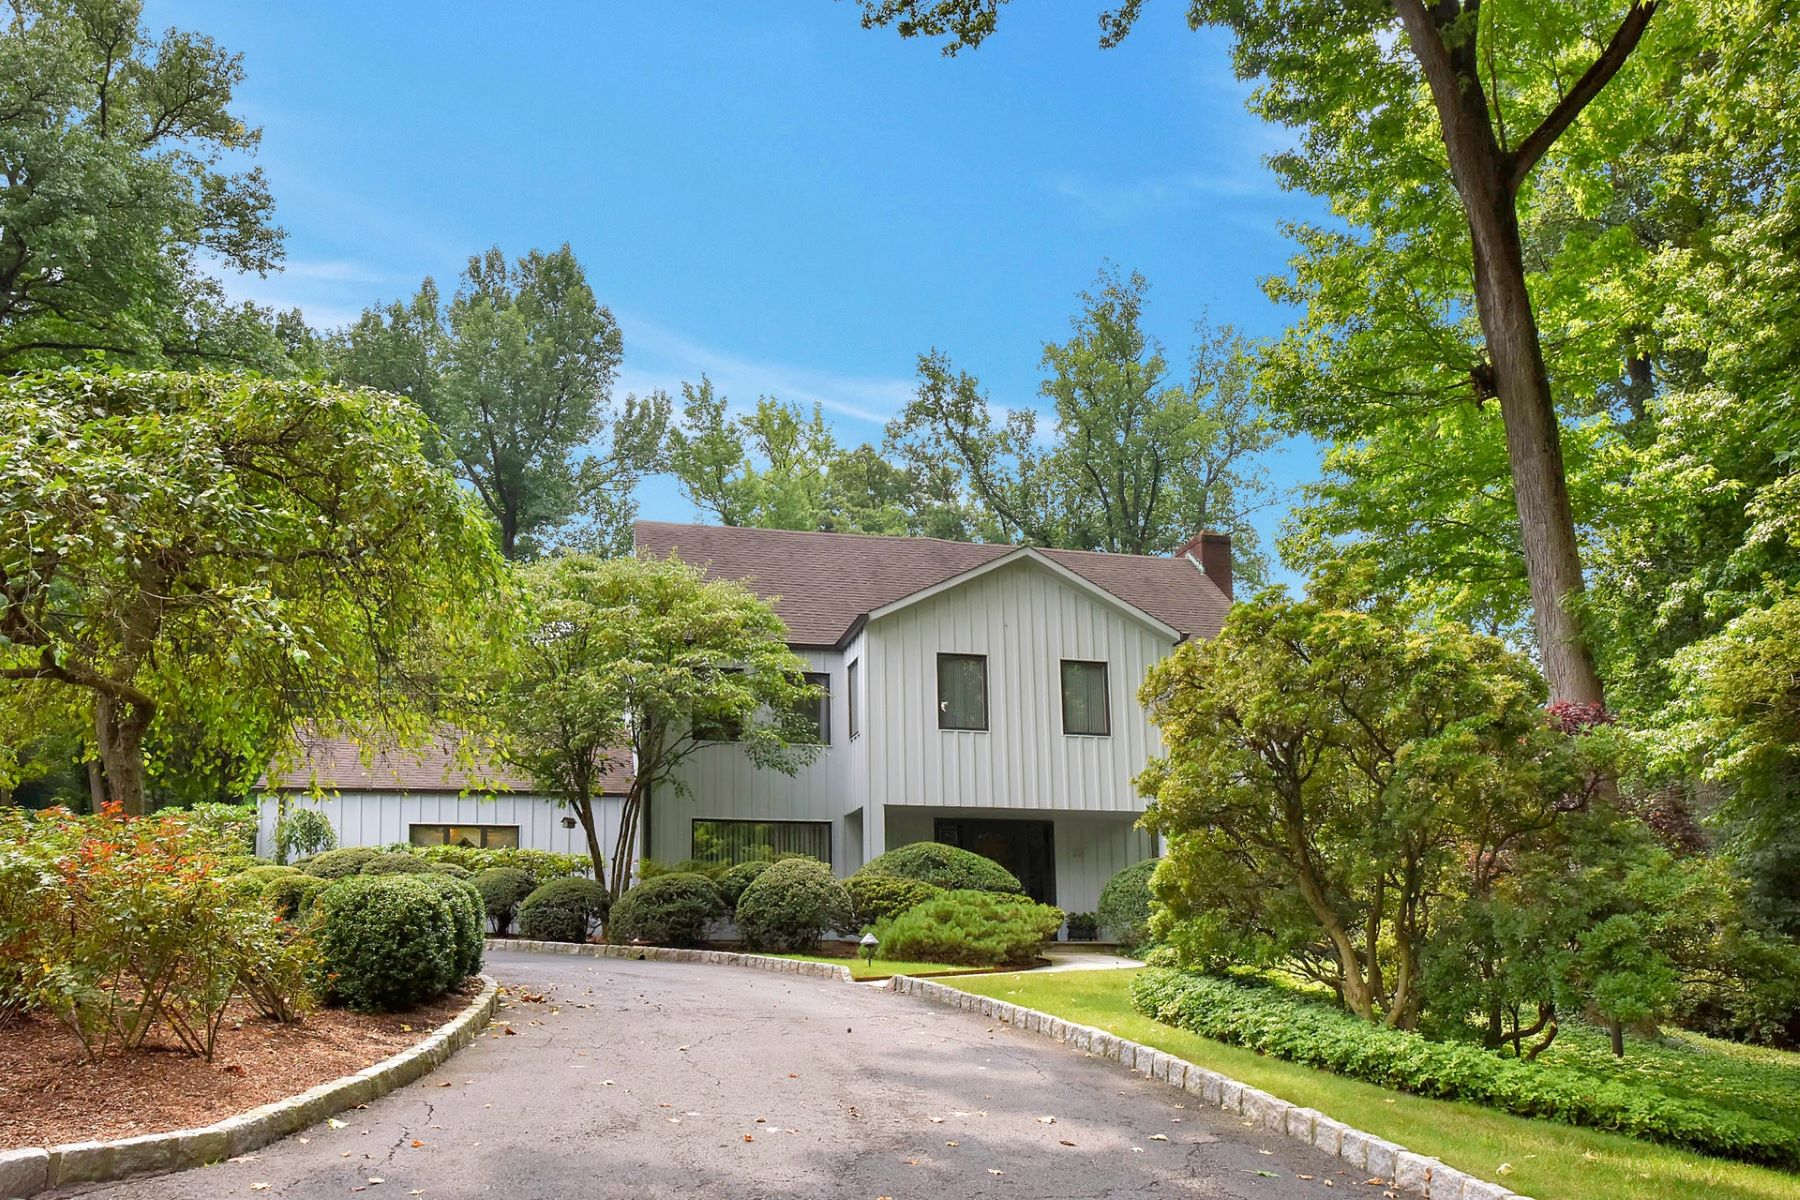 Single Family Home for Sale at Beautiful Property on East Hill 22 Woodhill Road, Tenafly, New Jersey 07670 United States